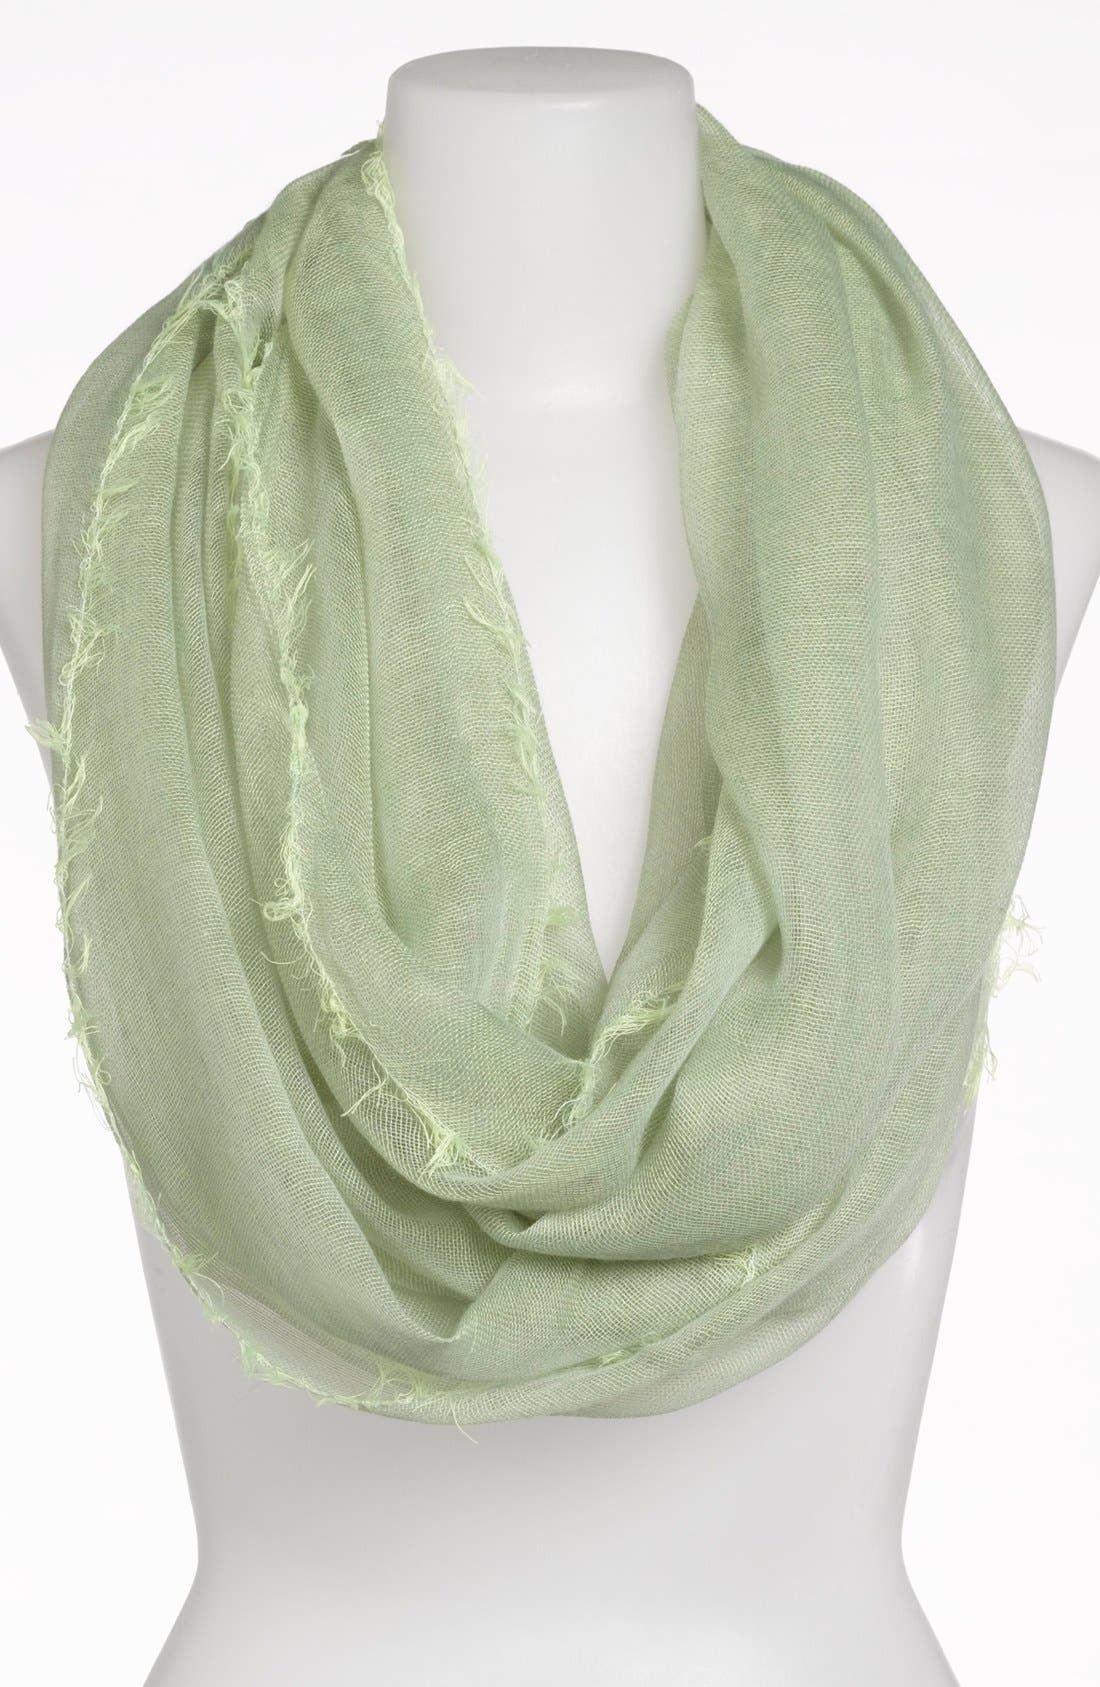 Main Image - Collection XIIX Infinity Scarf